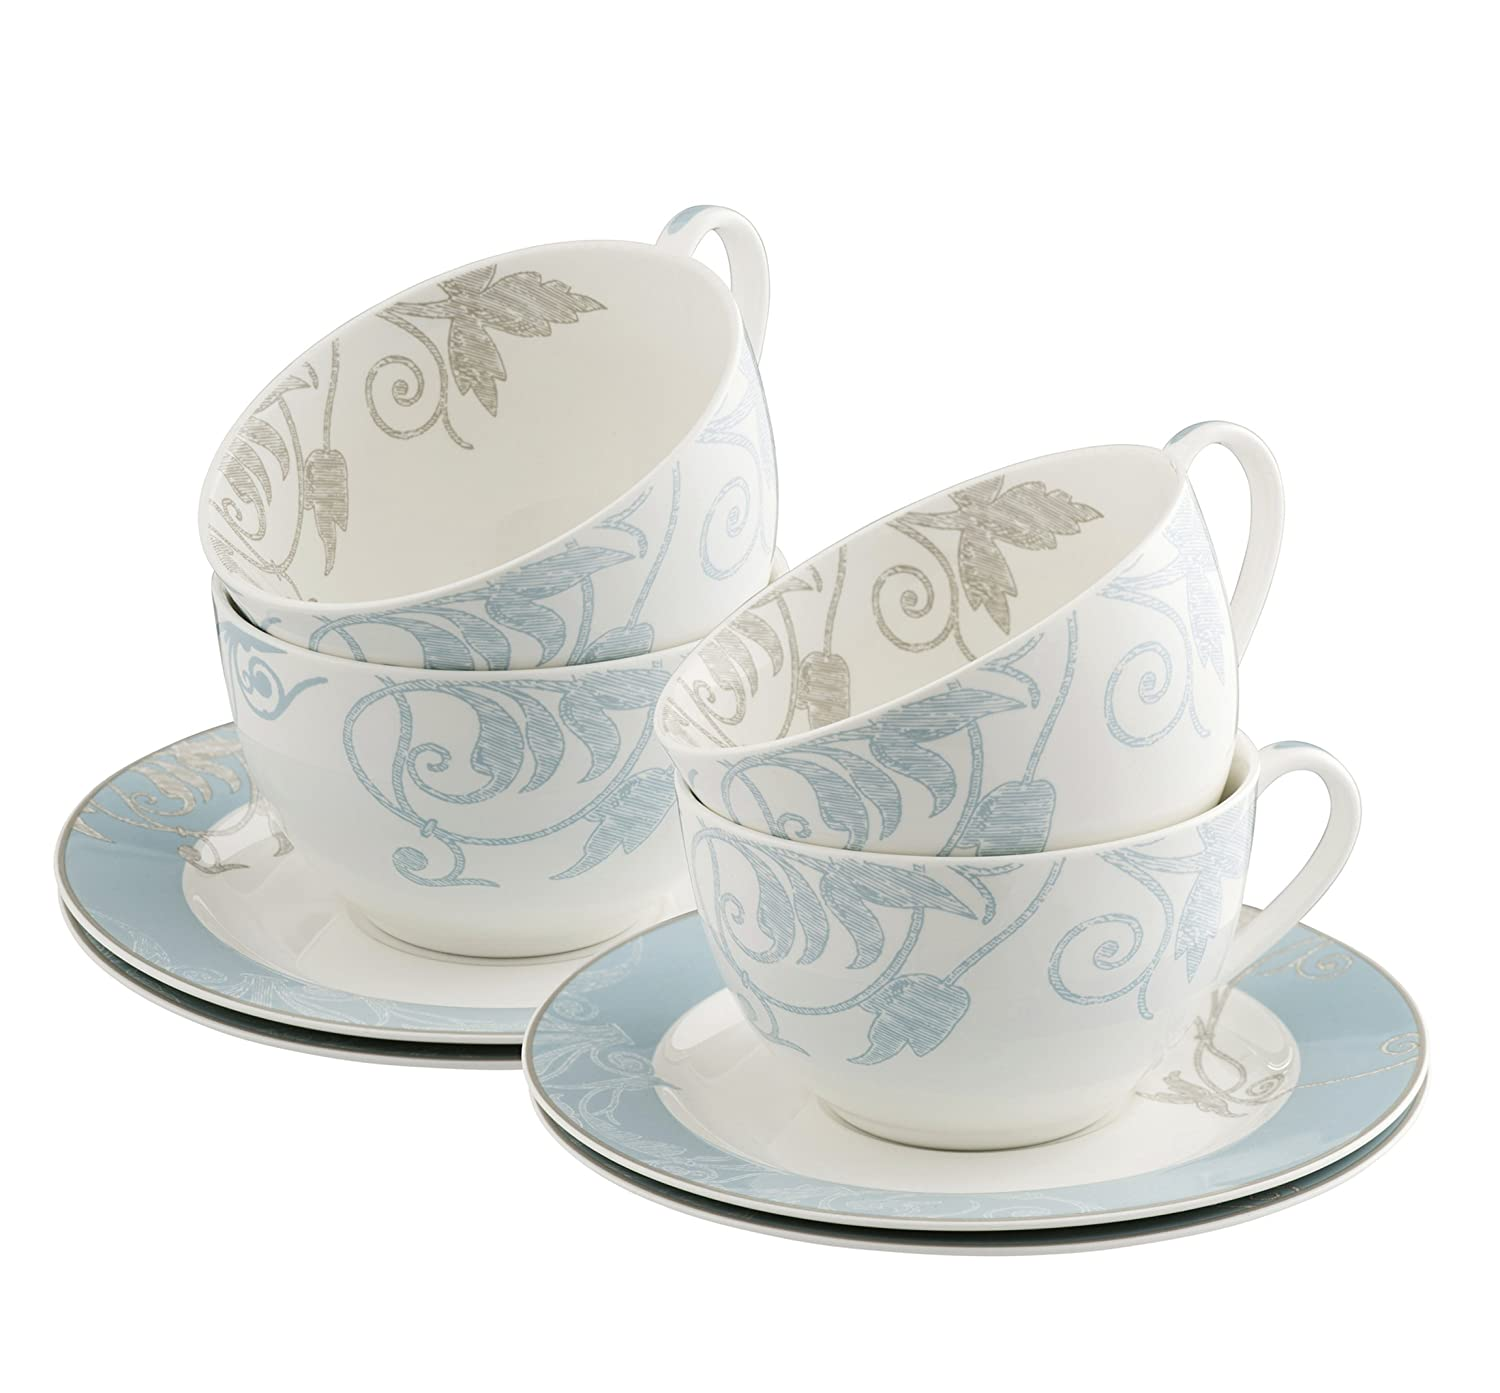 Belleek Living Novello Teacup and Saucer, Multi-Colour, Set of 4 7998